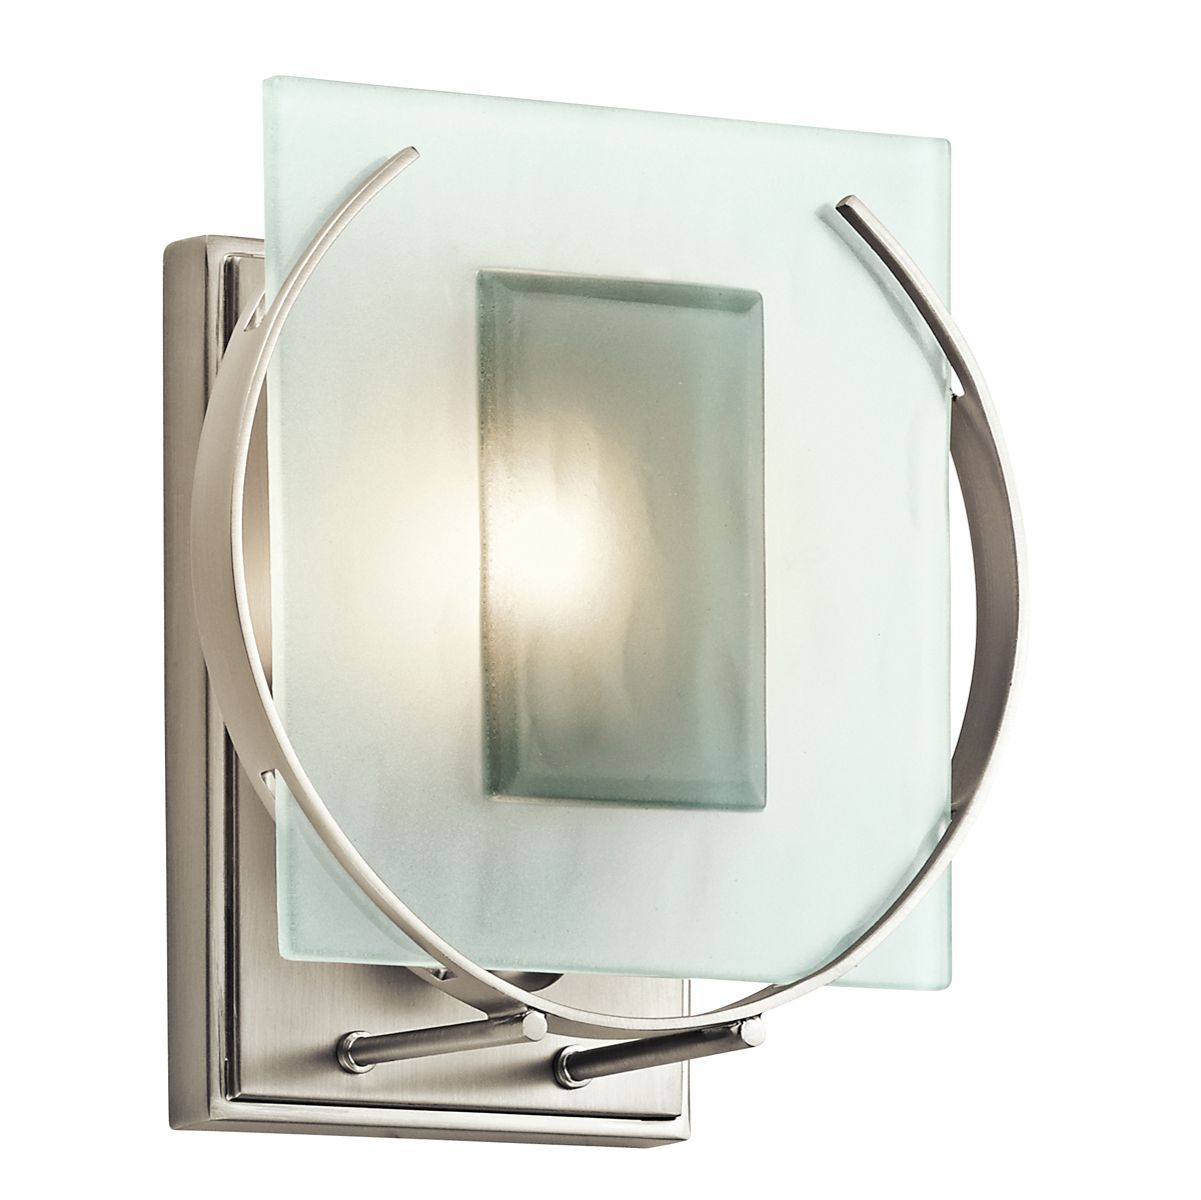 45072ni Manitoba Wall Sconce 1 Light Incandescent From Kichler